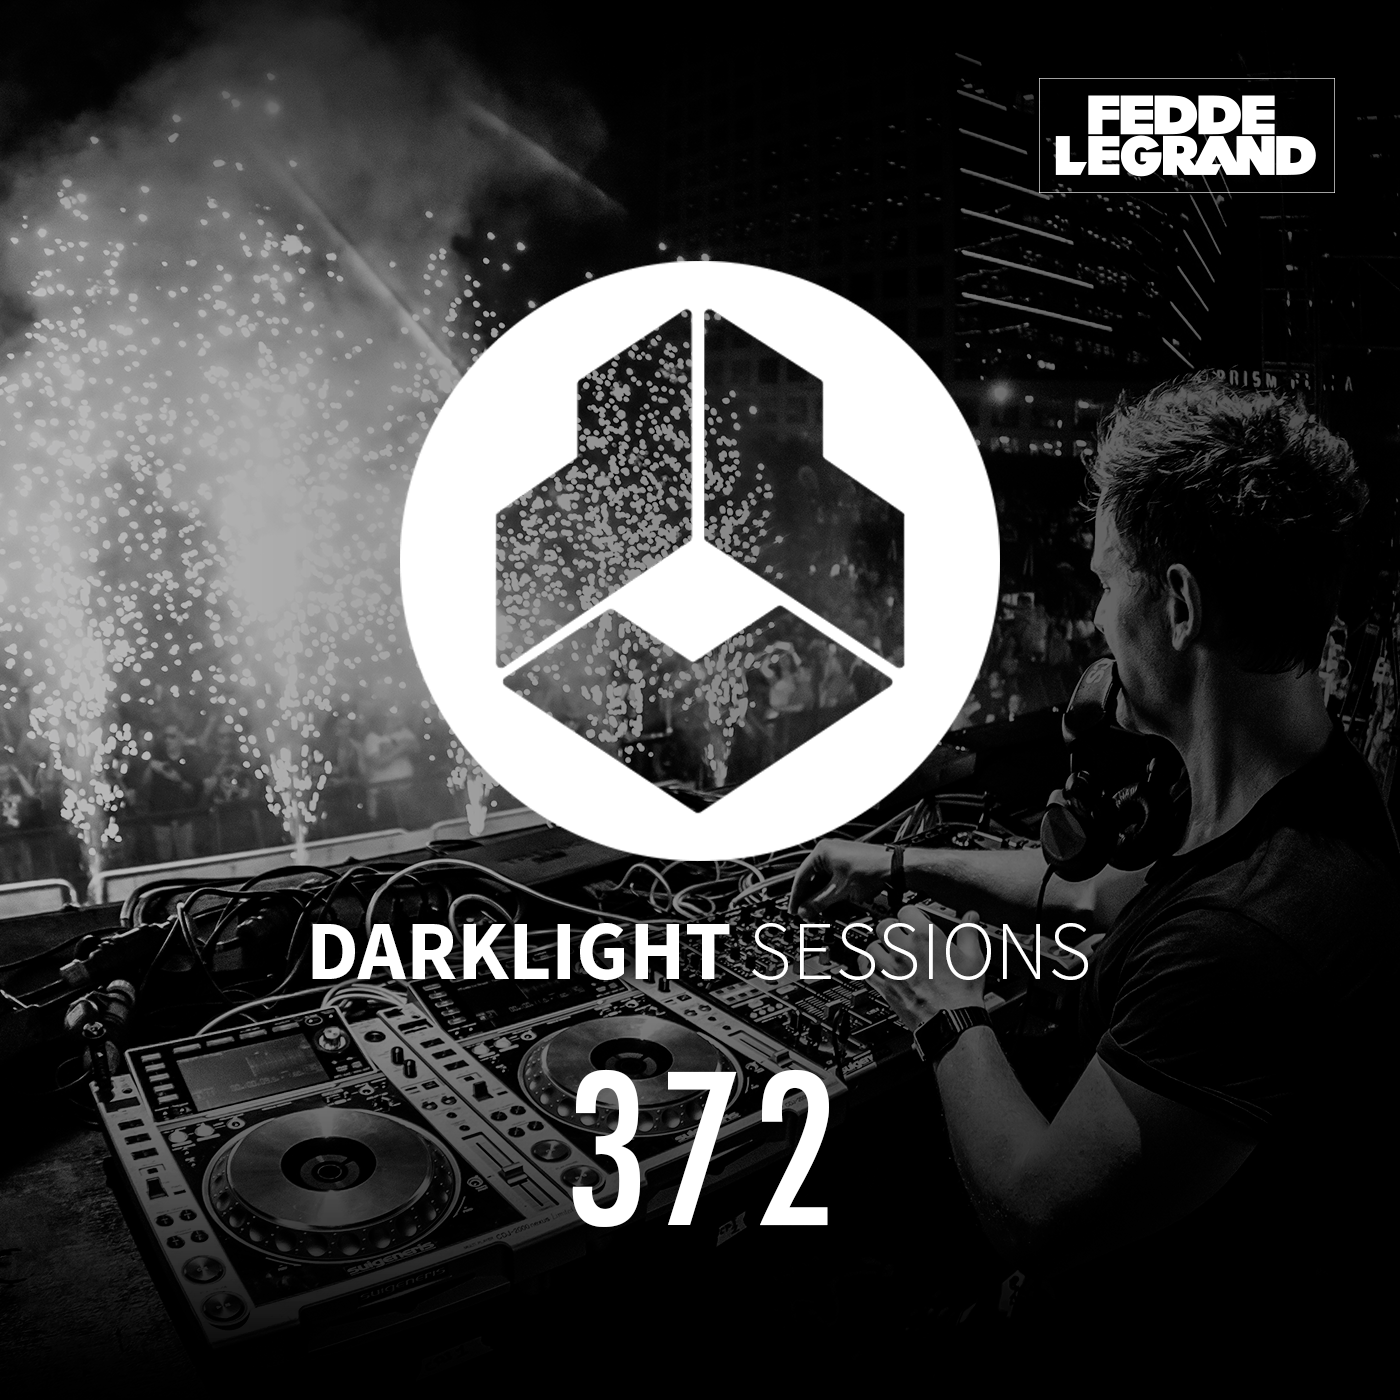 Darklight Sessions 372